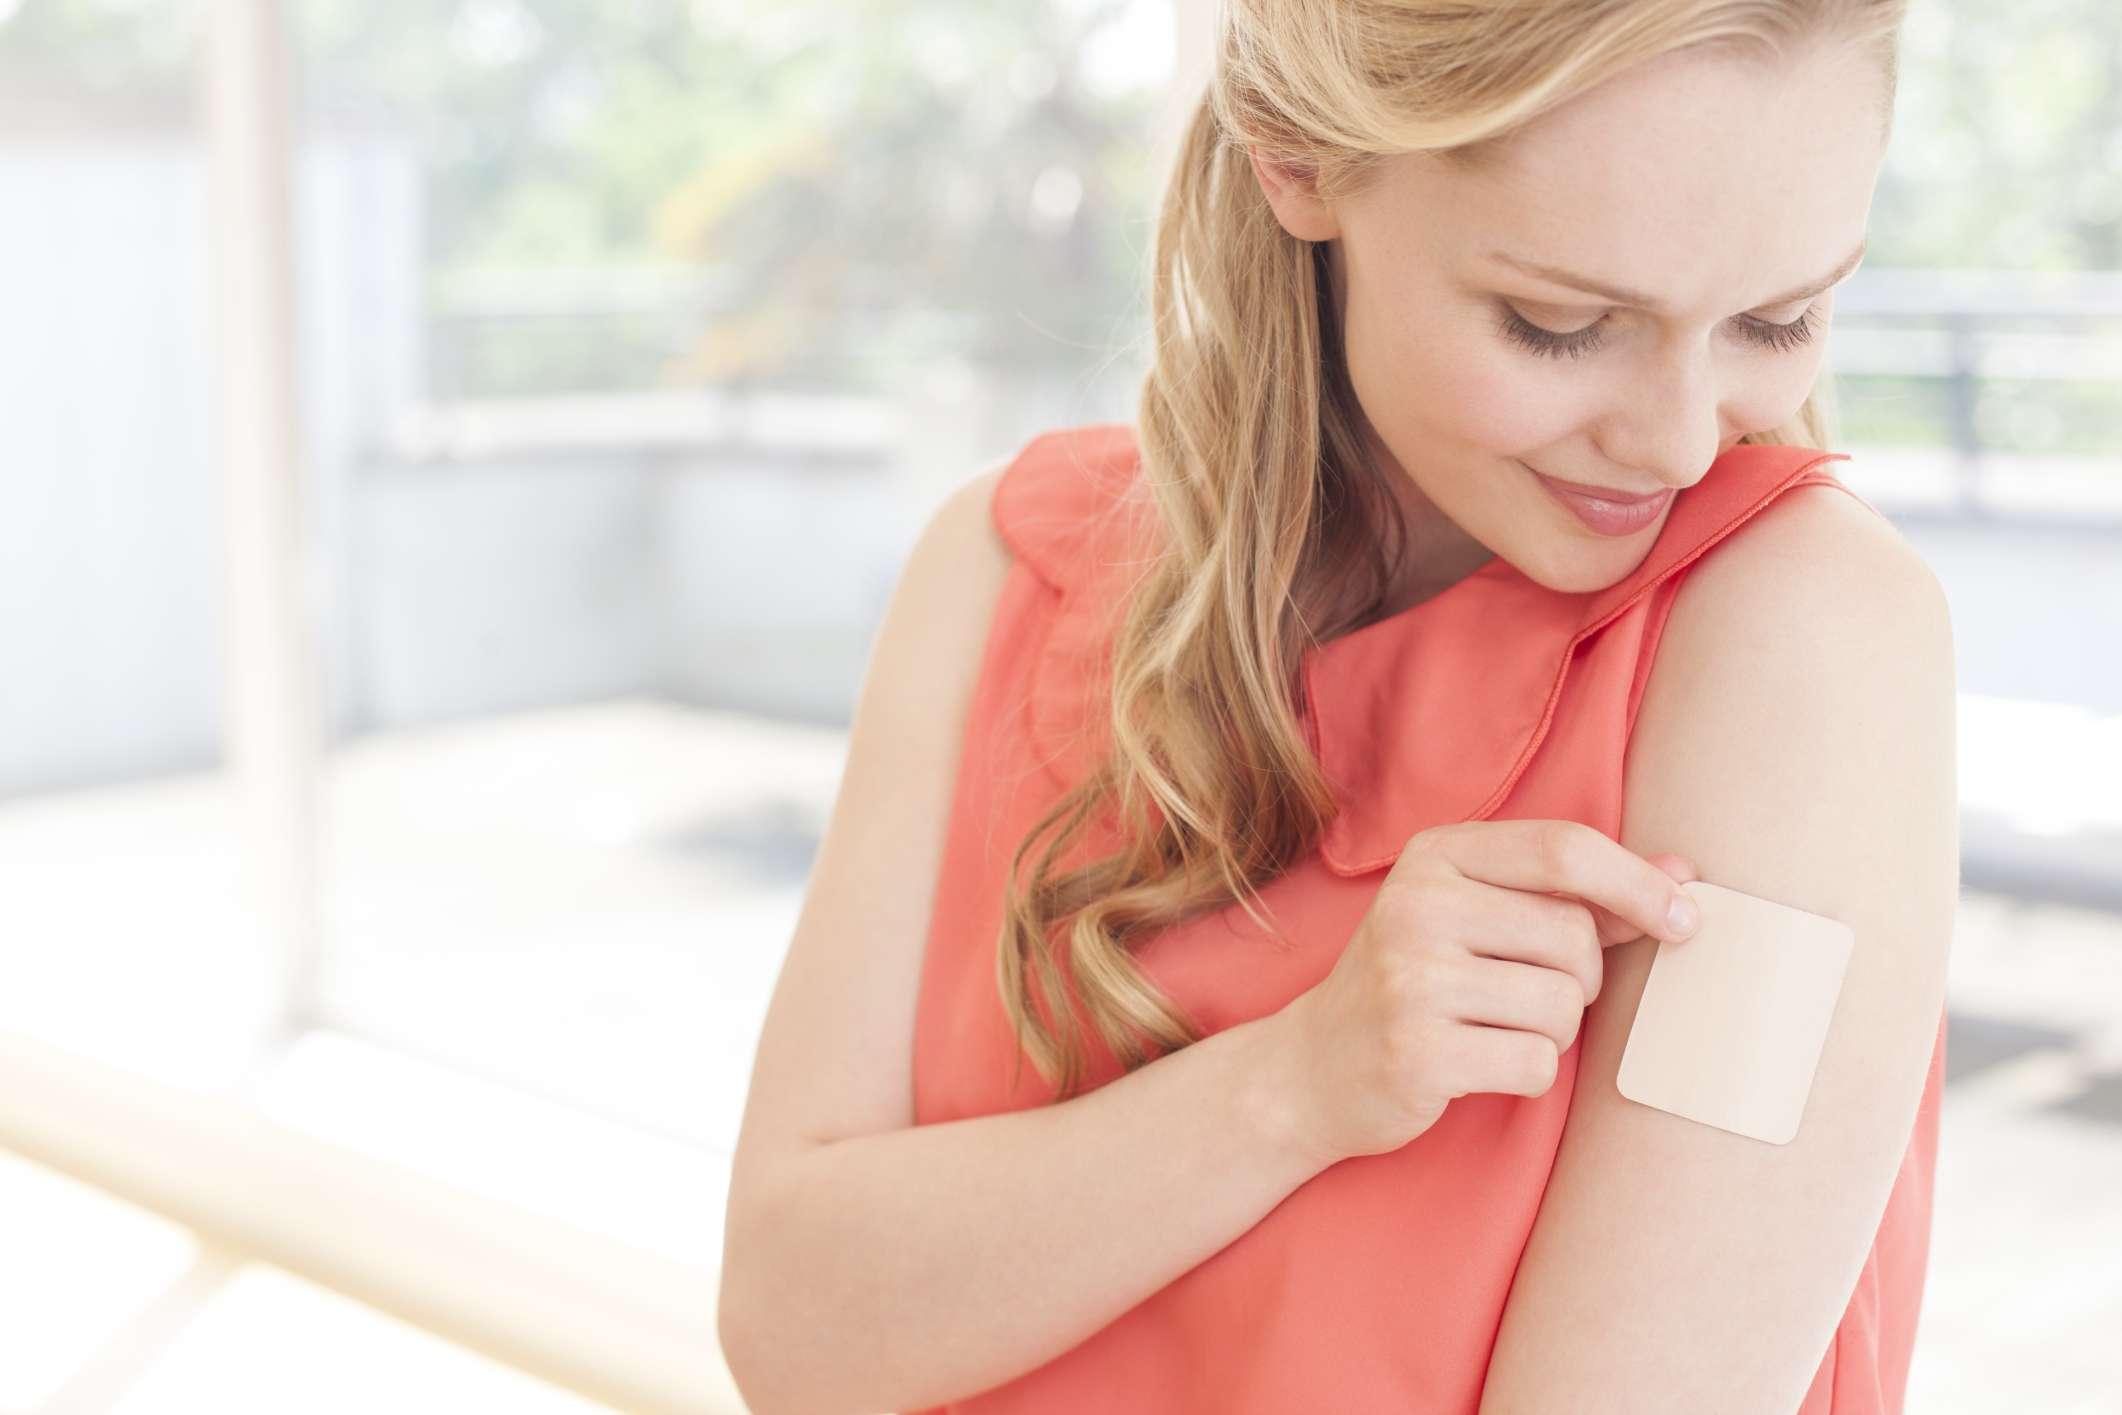 Woman putting contraception patch on arm